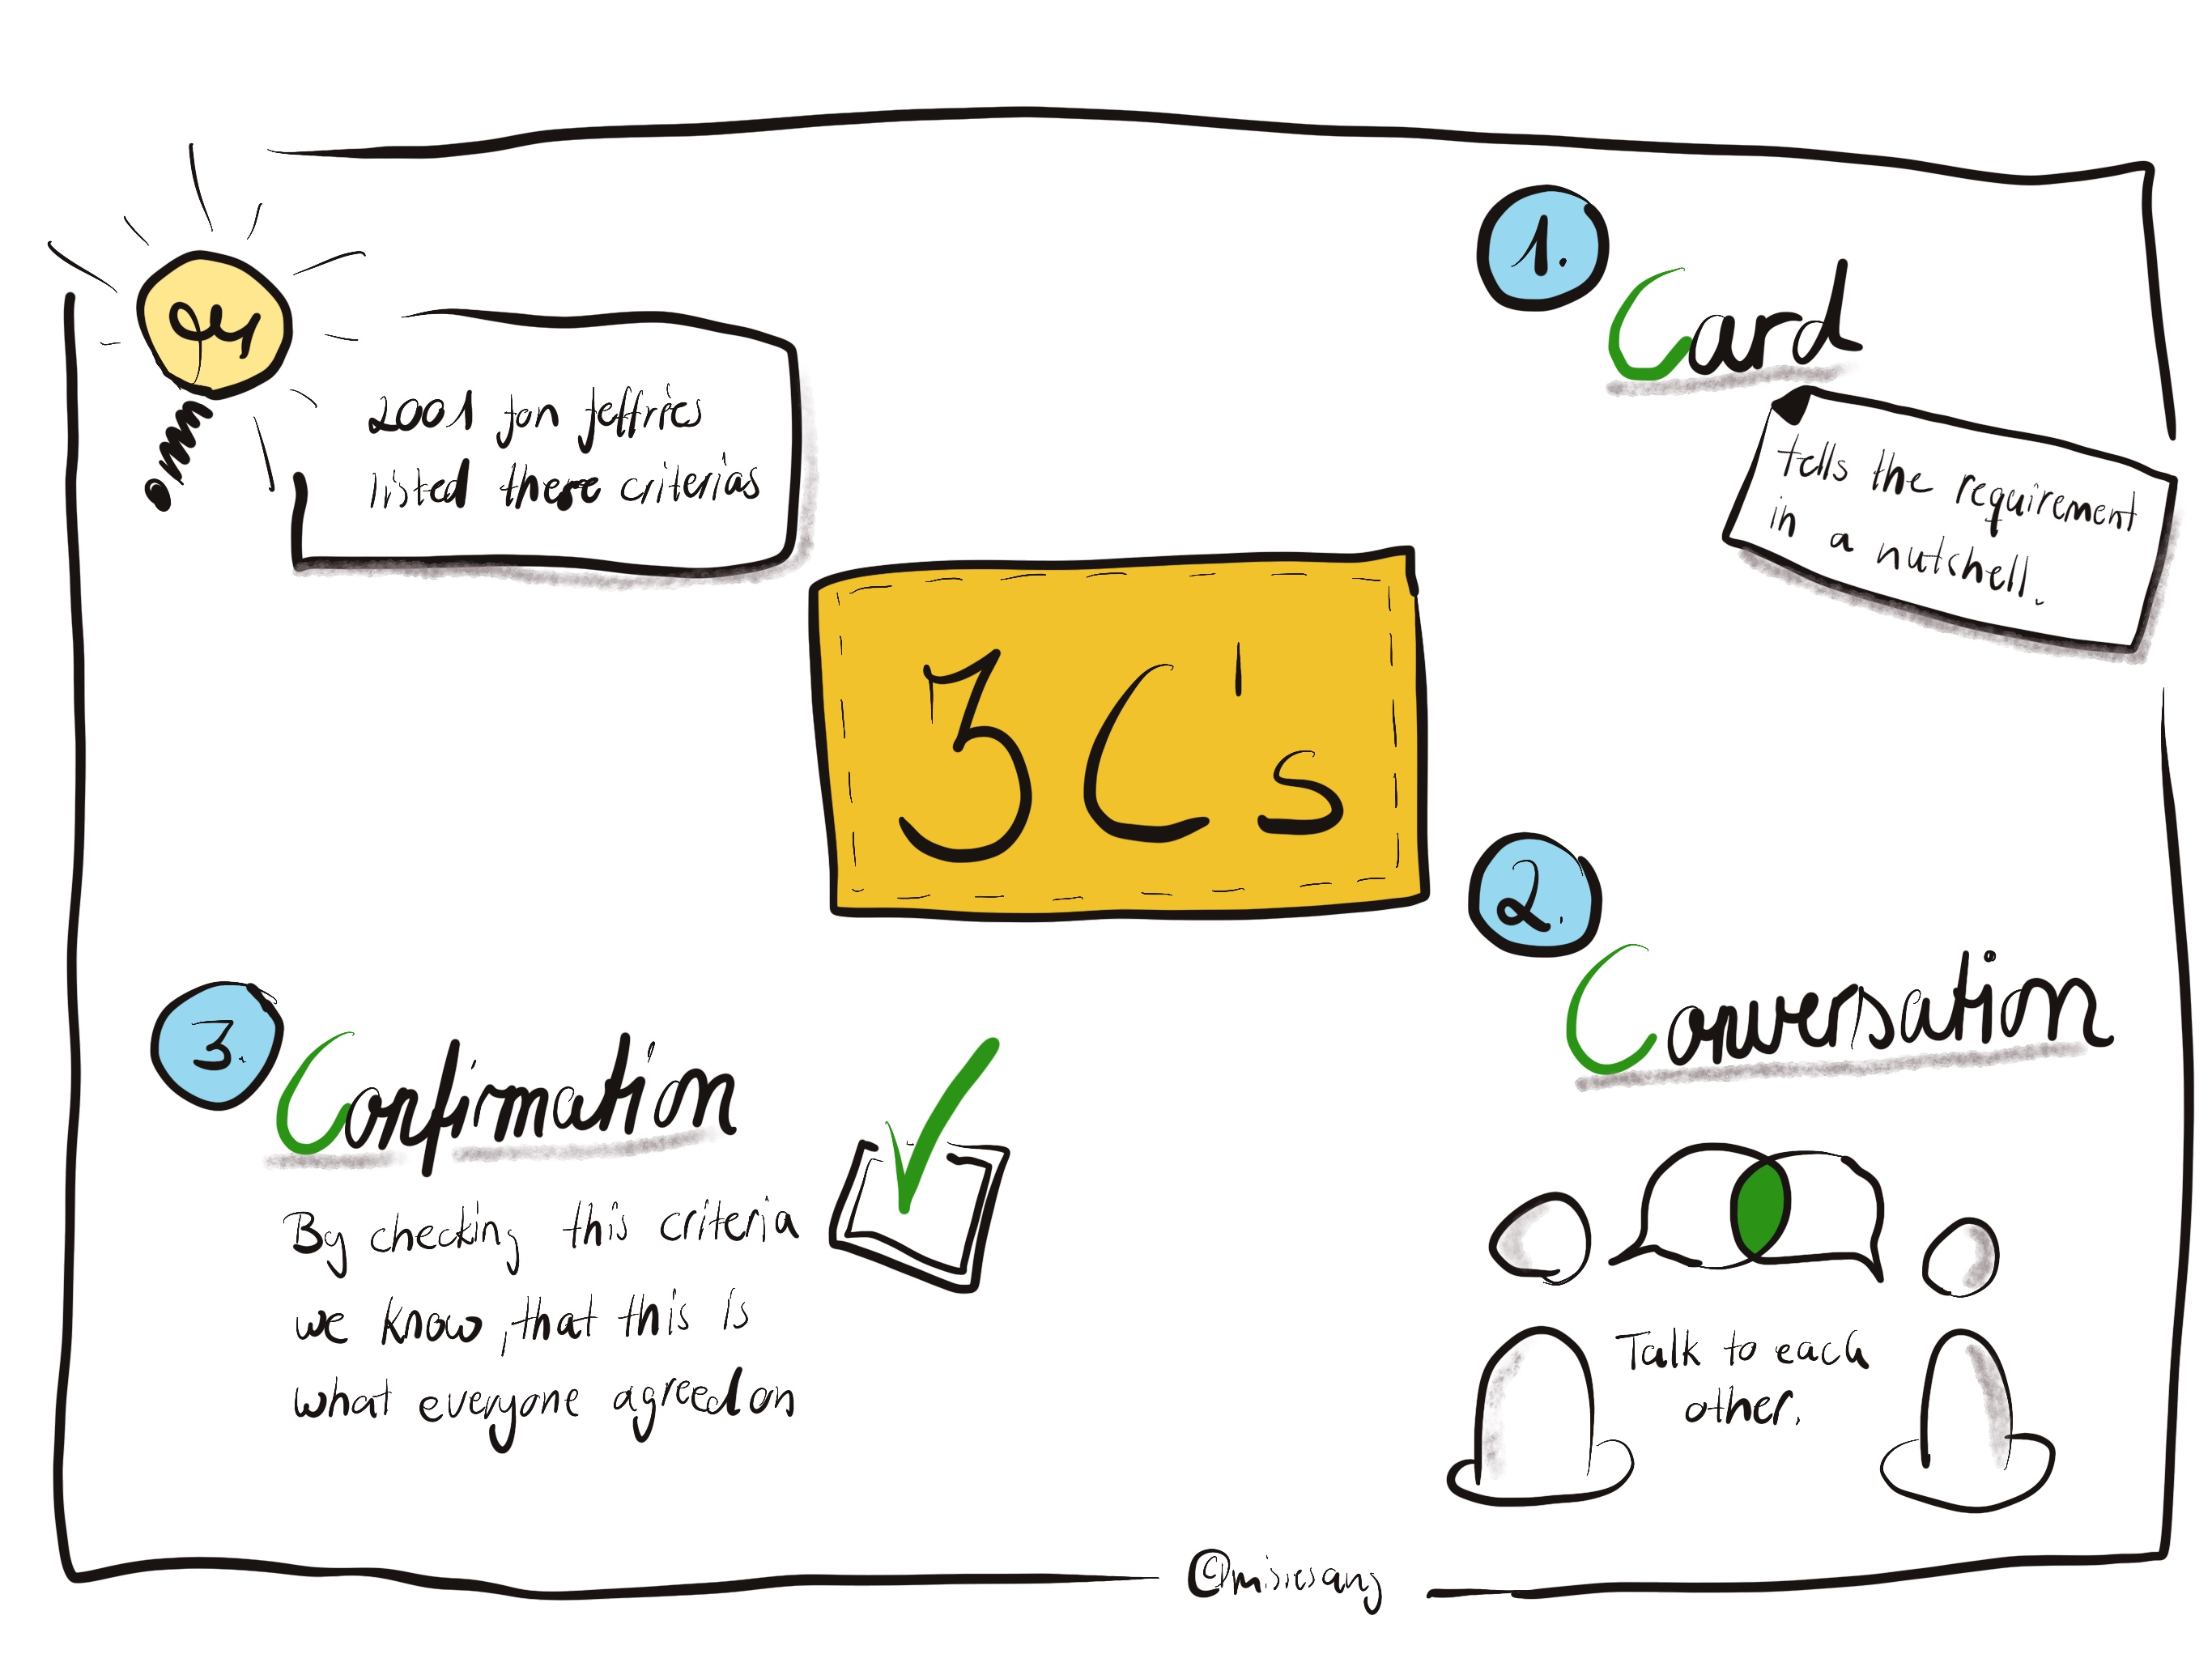 agile myth writing user stories is product owner work